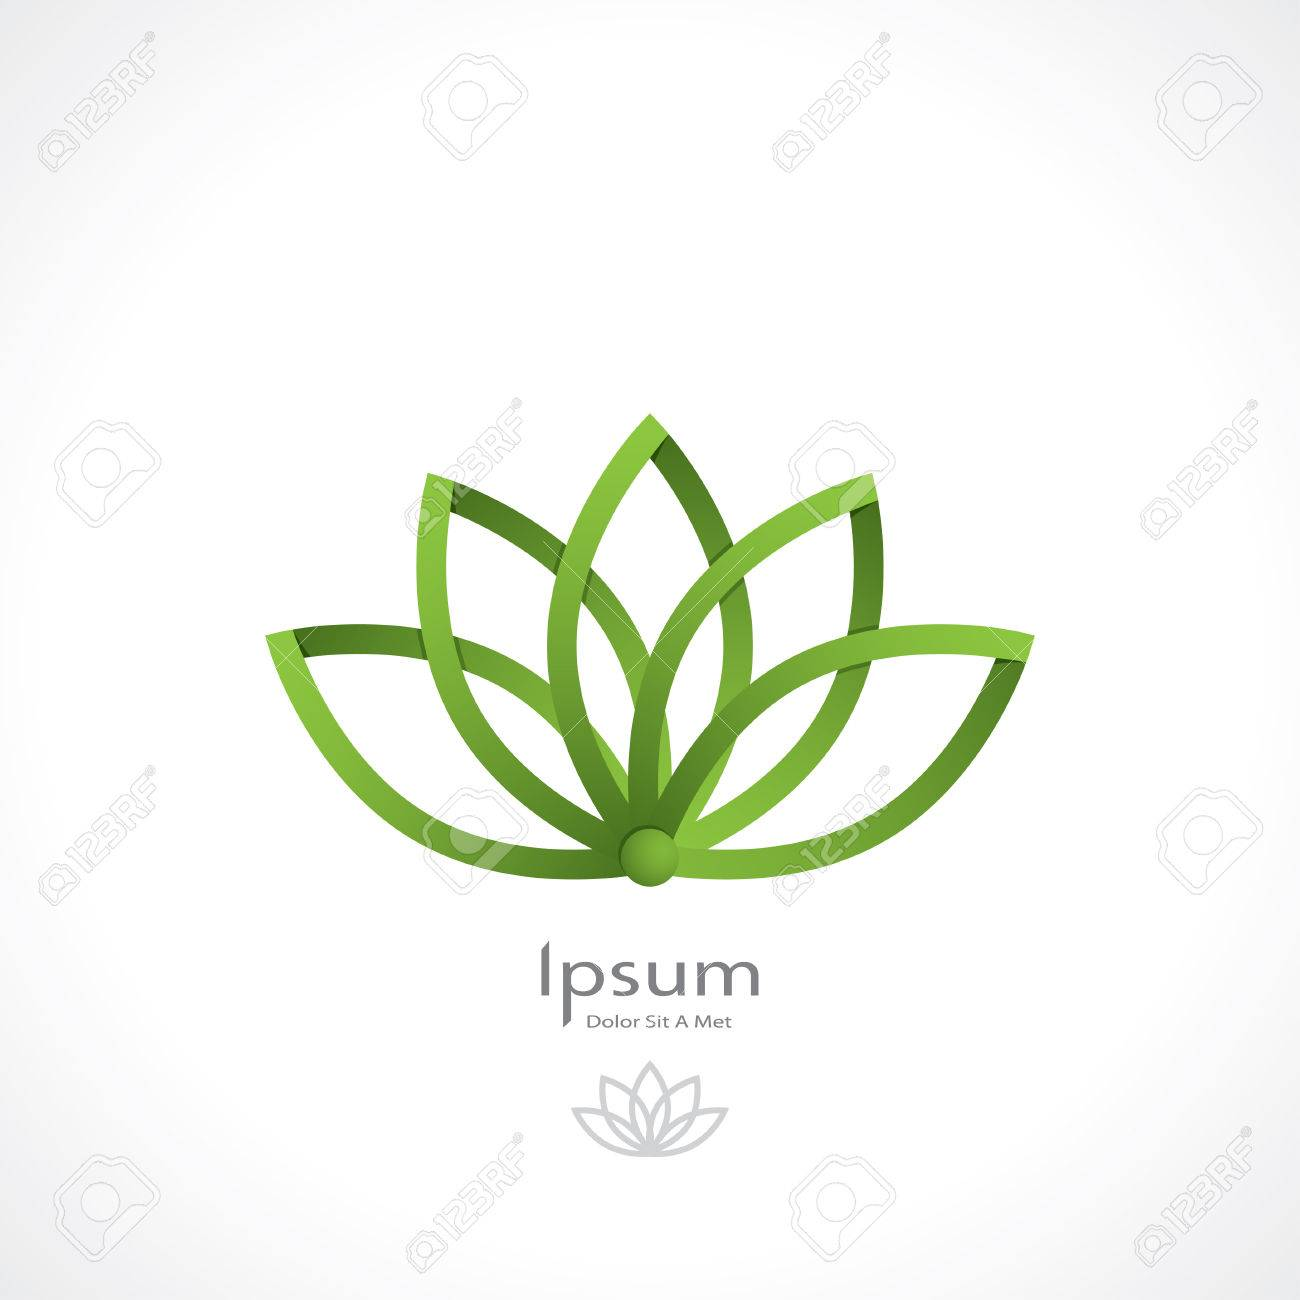 Green lotus symbolic the style of origami royalty free cliparts green lotus symbolic the style of origami stock vector 31431990 izmirmasajfo